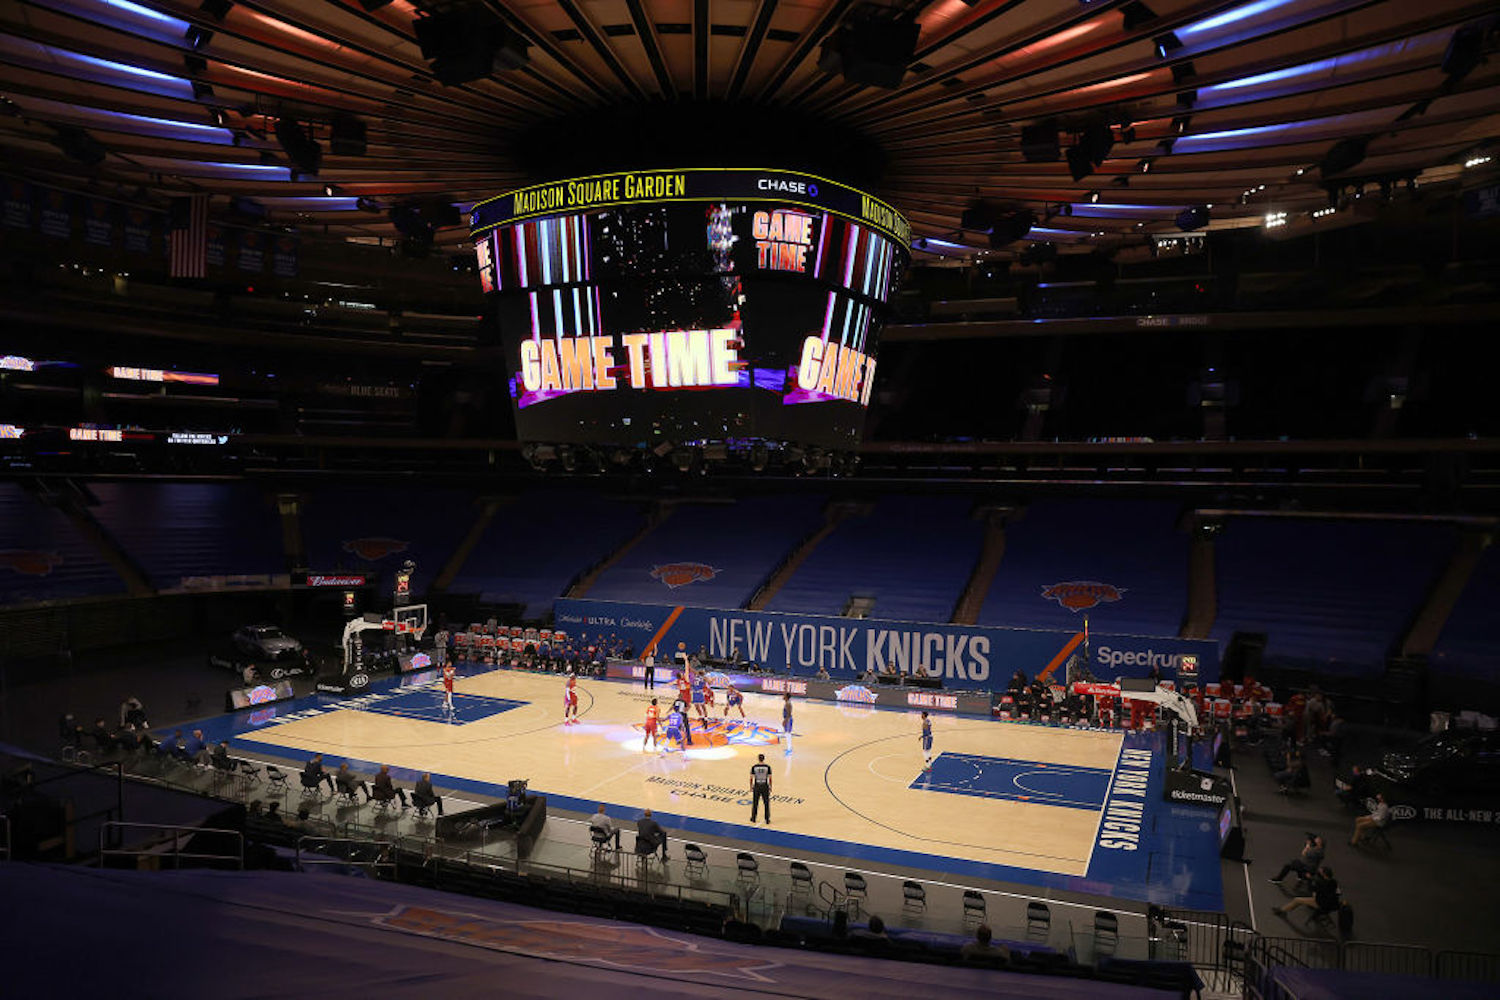 Despite a championship drought that's lasted nearly 50 years, the Knicks were just named the most valuable NBA franchise at $5.42 billion.